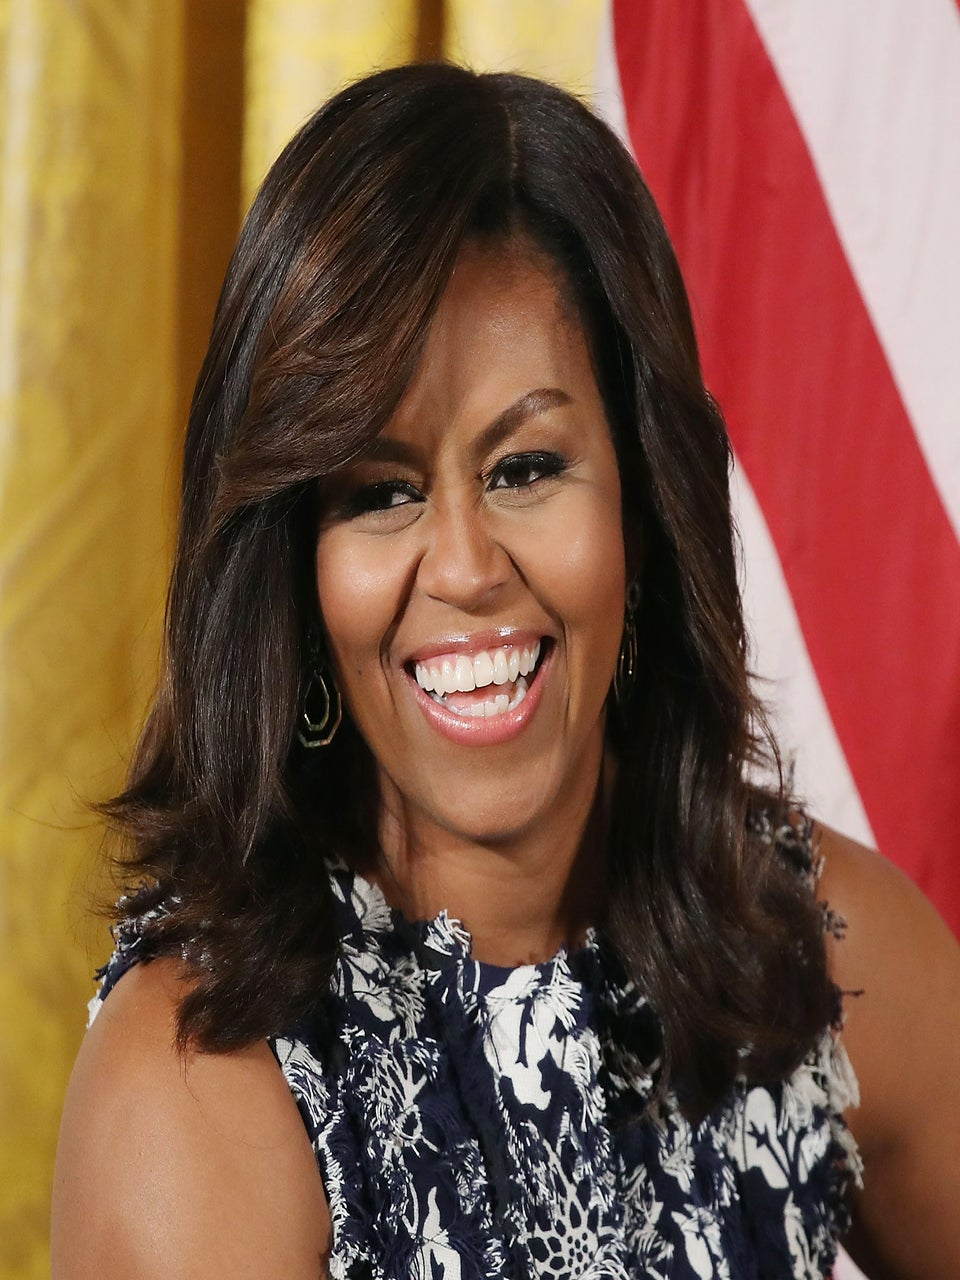 Cop the $42 Leggings Michelle Obama Works Out In